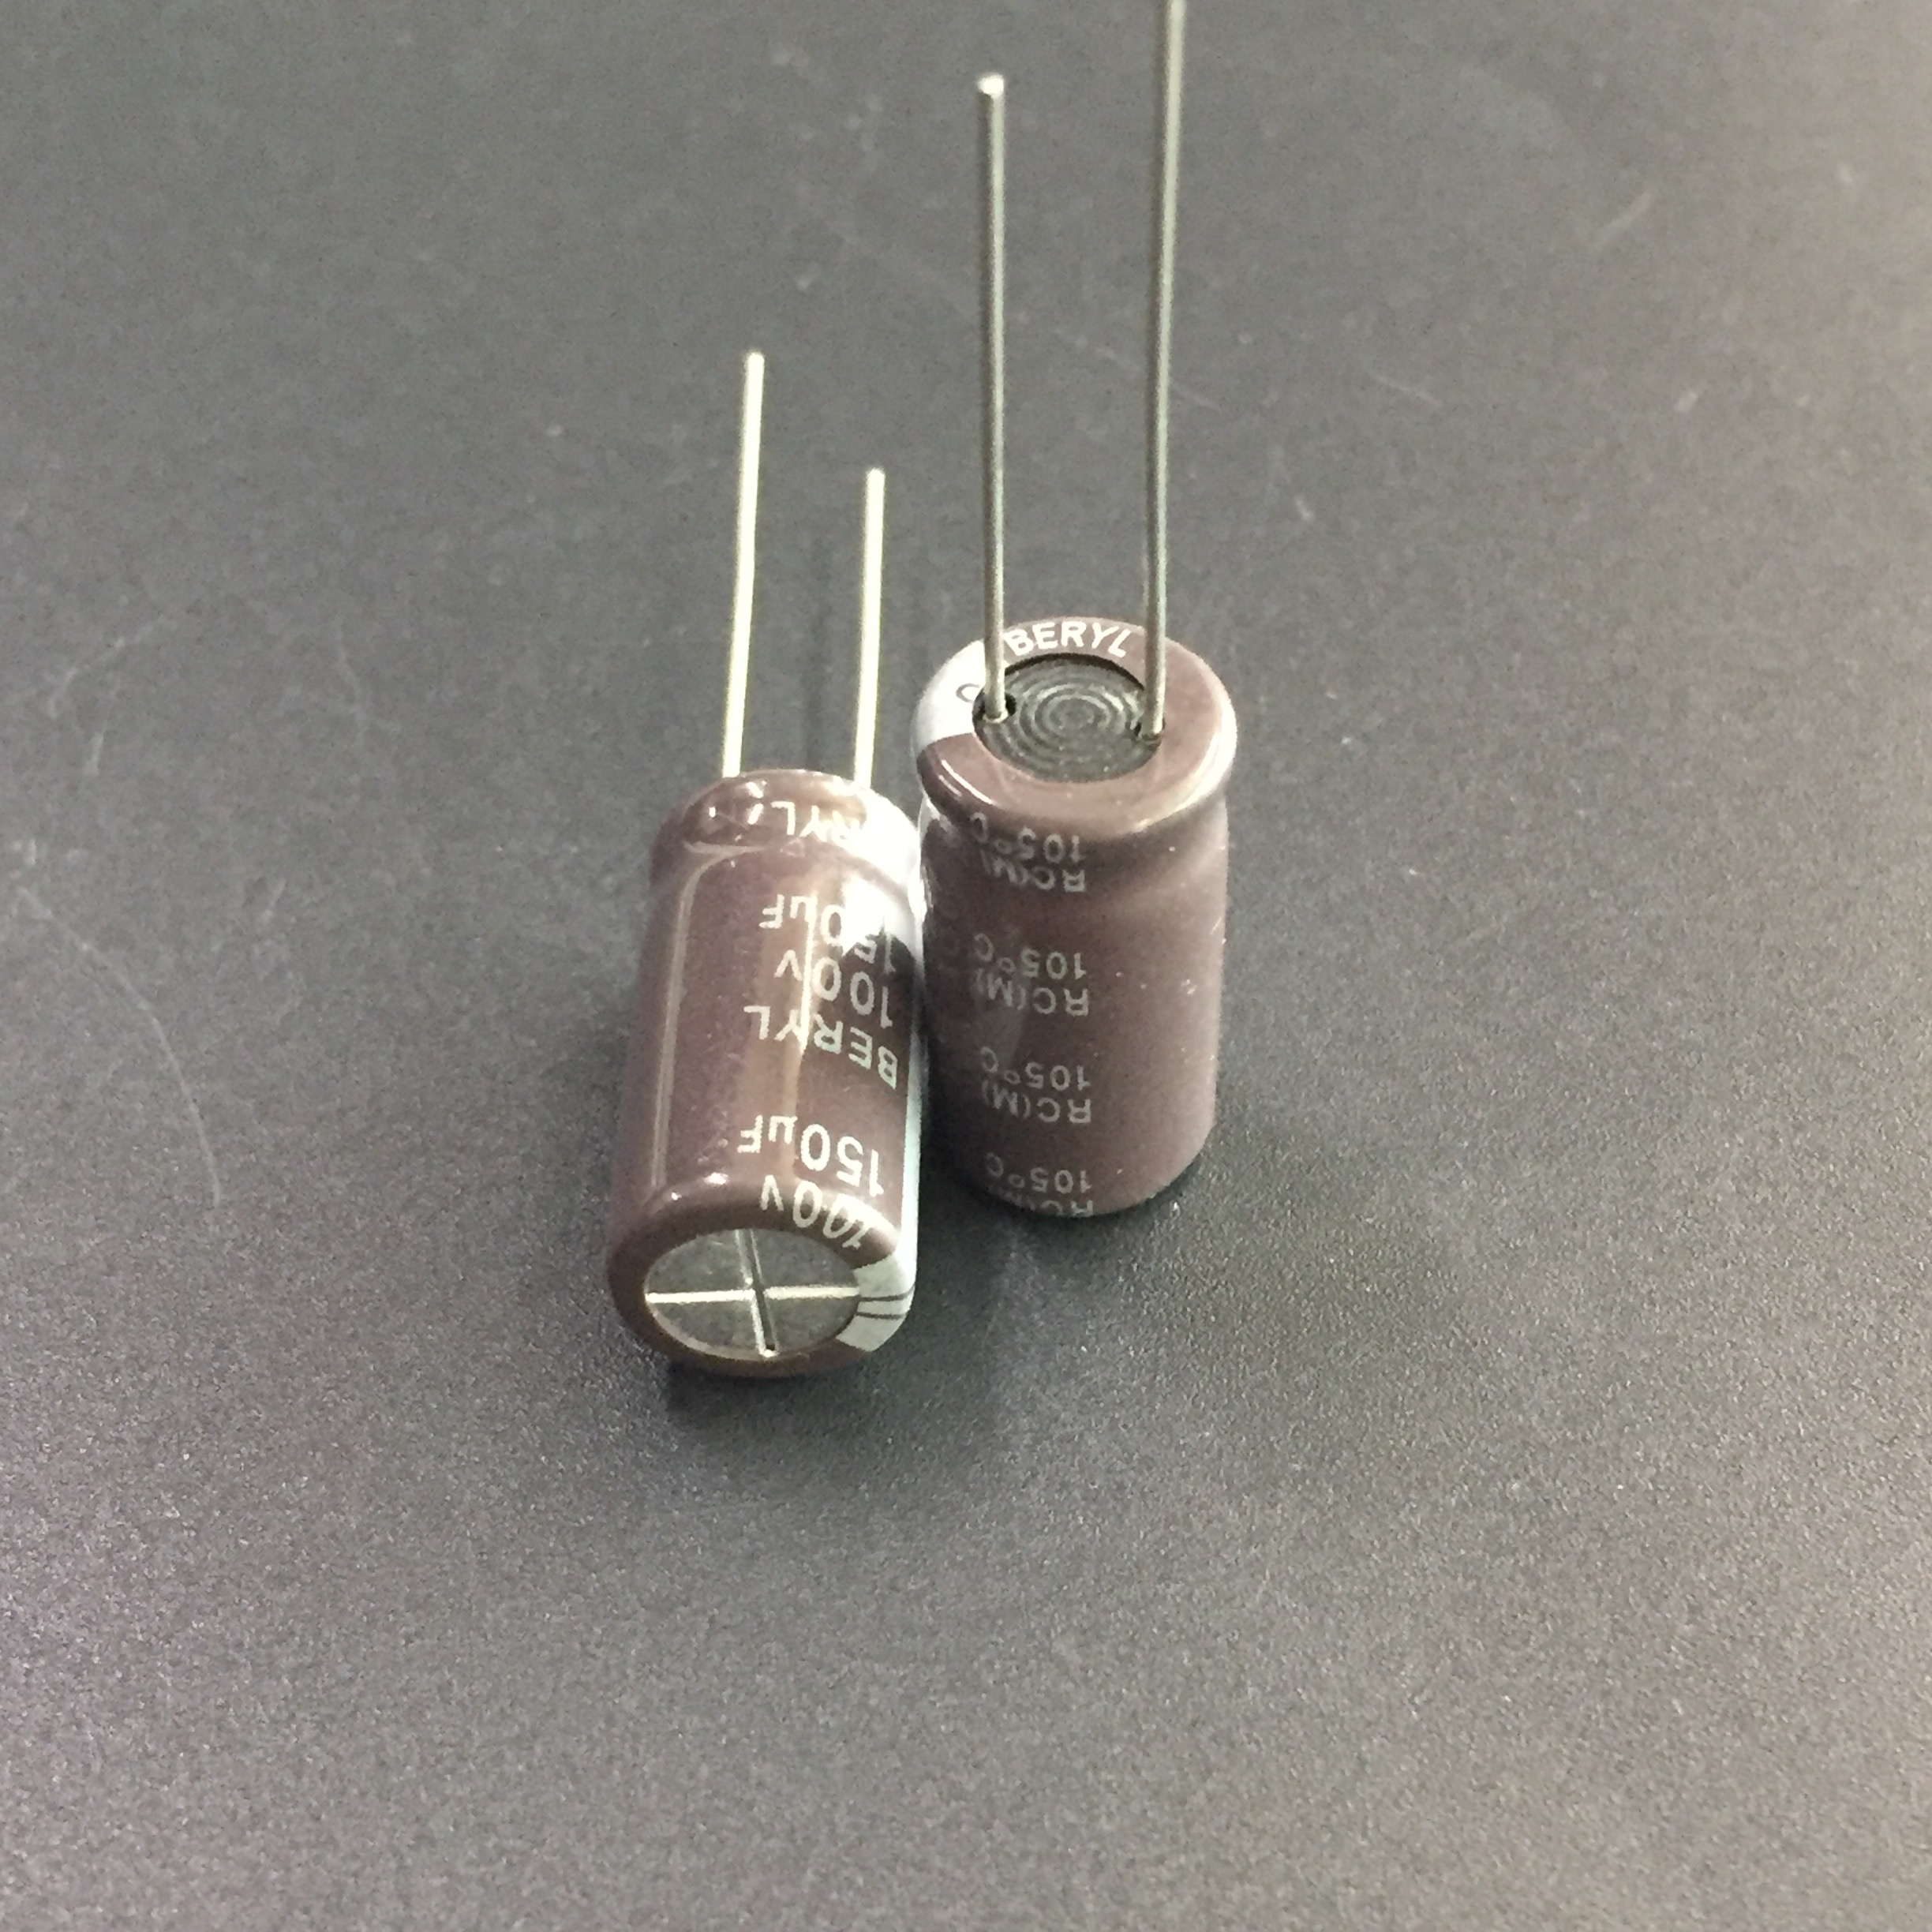 5pcs/50pcs <font><b>150uF</b></font> <font><b>100V</b></font> BERYL RC 10x20mm 100V150uF Good Quality Capacitor image